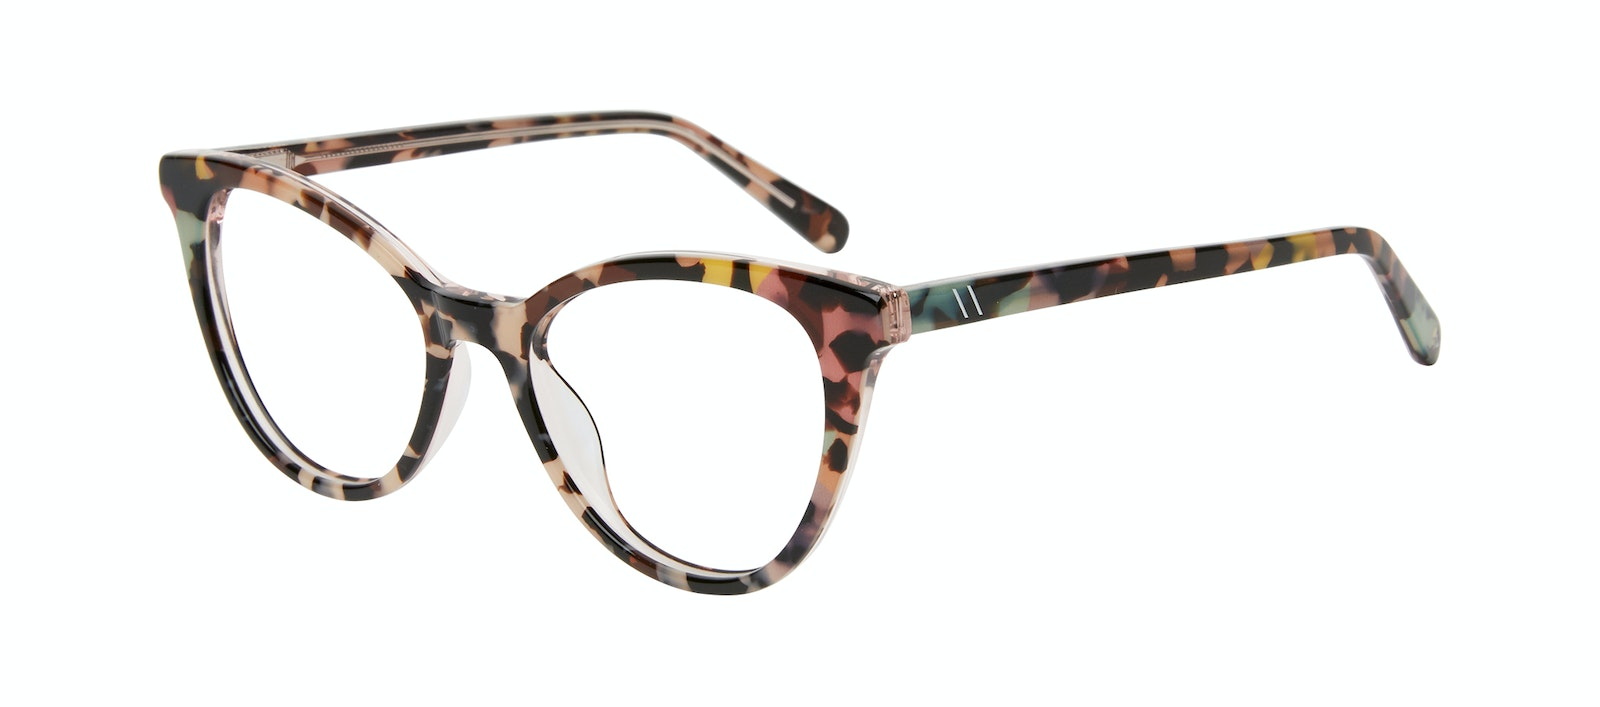 Affordable Fashion Glasses Cat Eye Eyeglasses Women Victoire M Pastel Tort Tilt